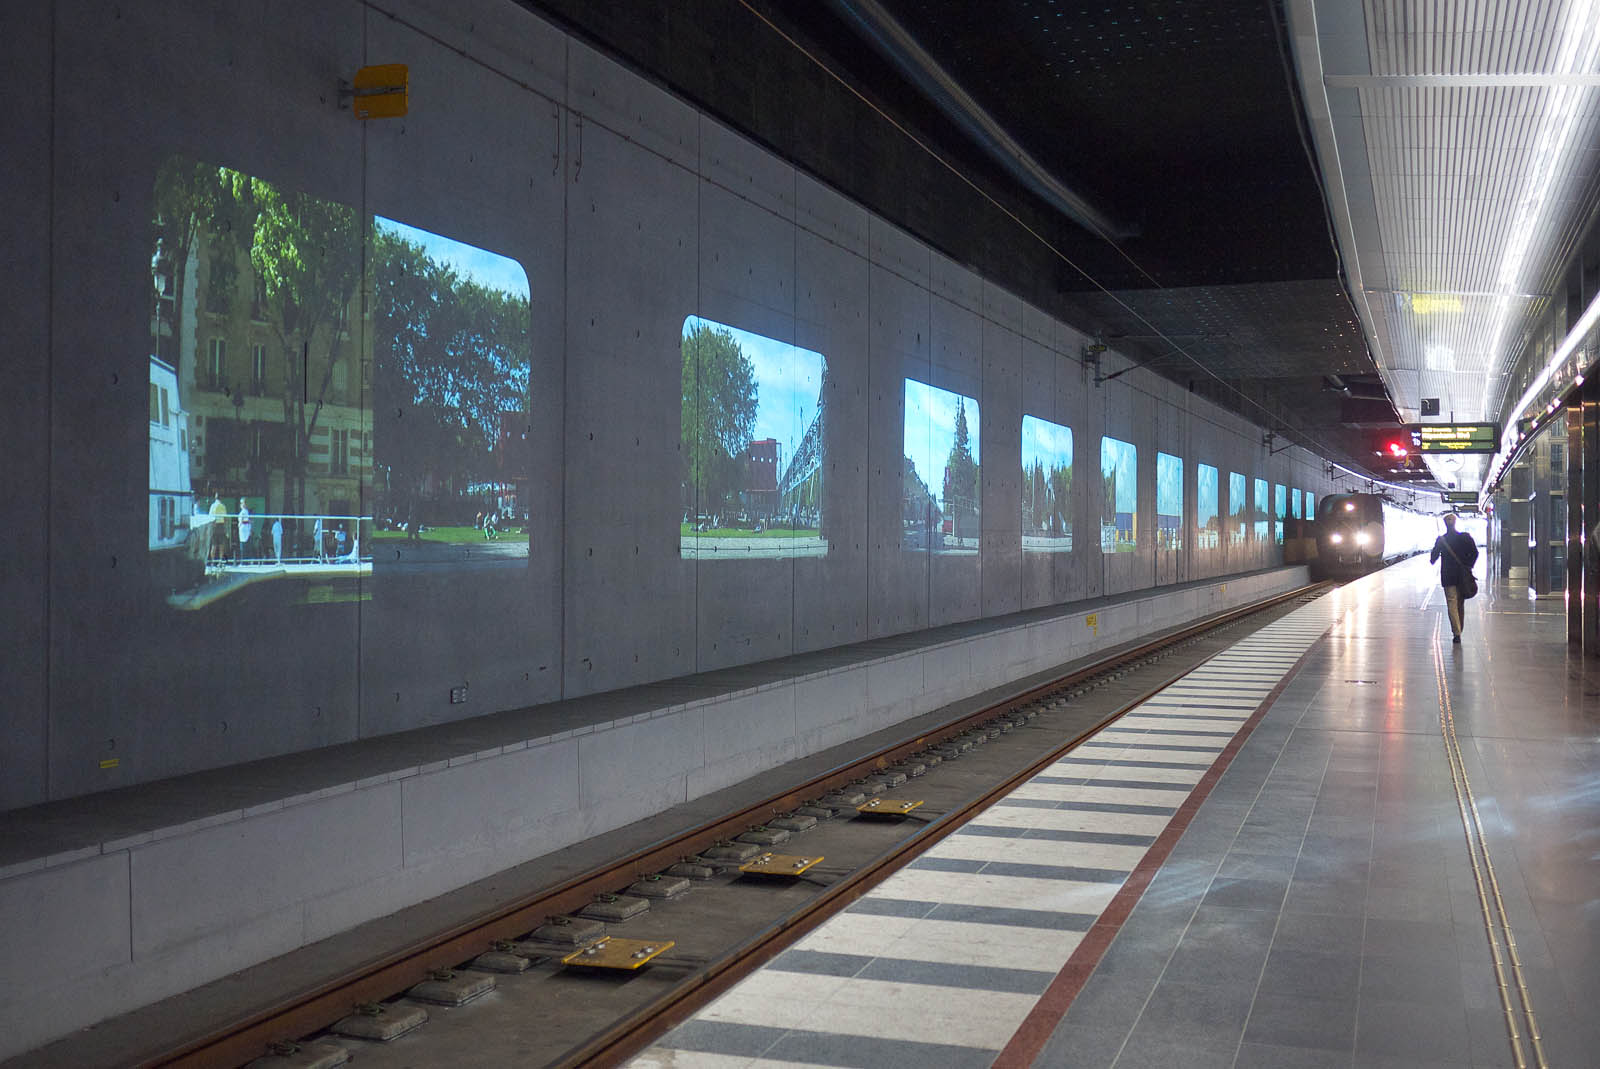 A train entering the station. On the wall projections of houses and trees.